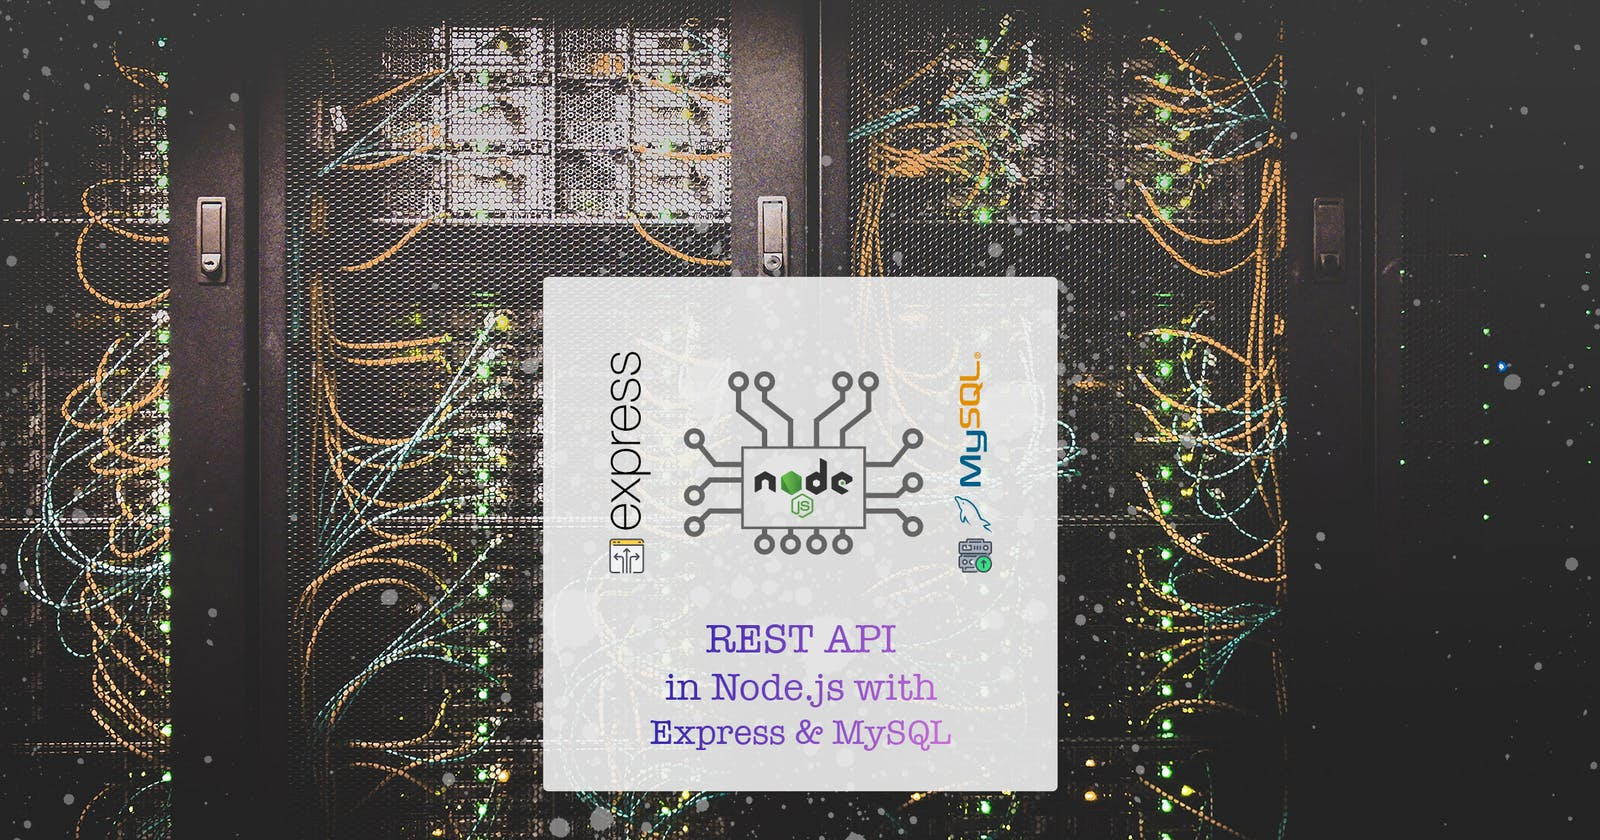 Creating REST API in Node.js with Express and MySQL